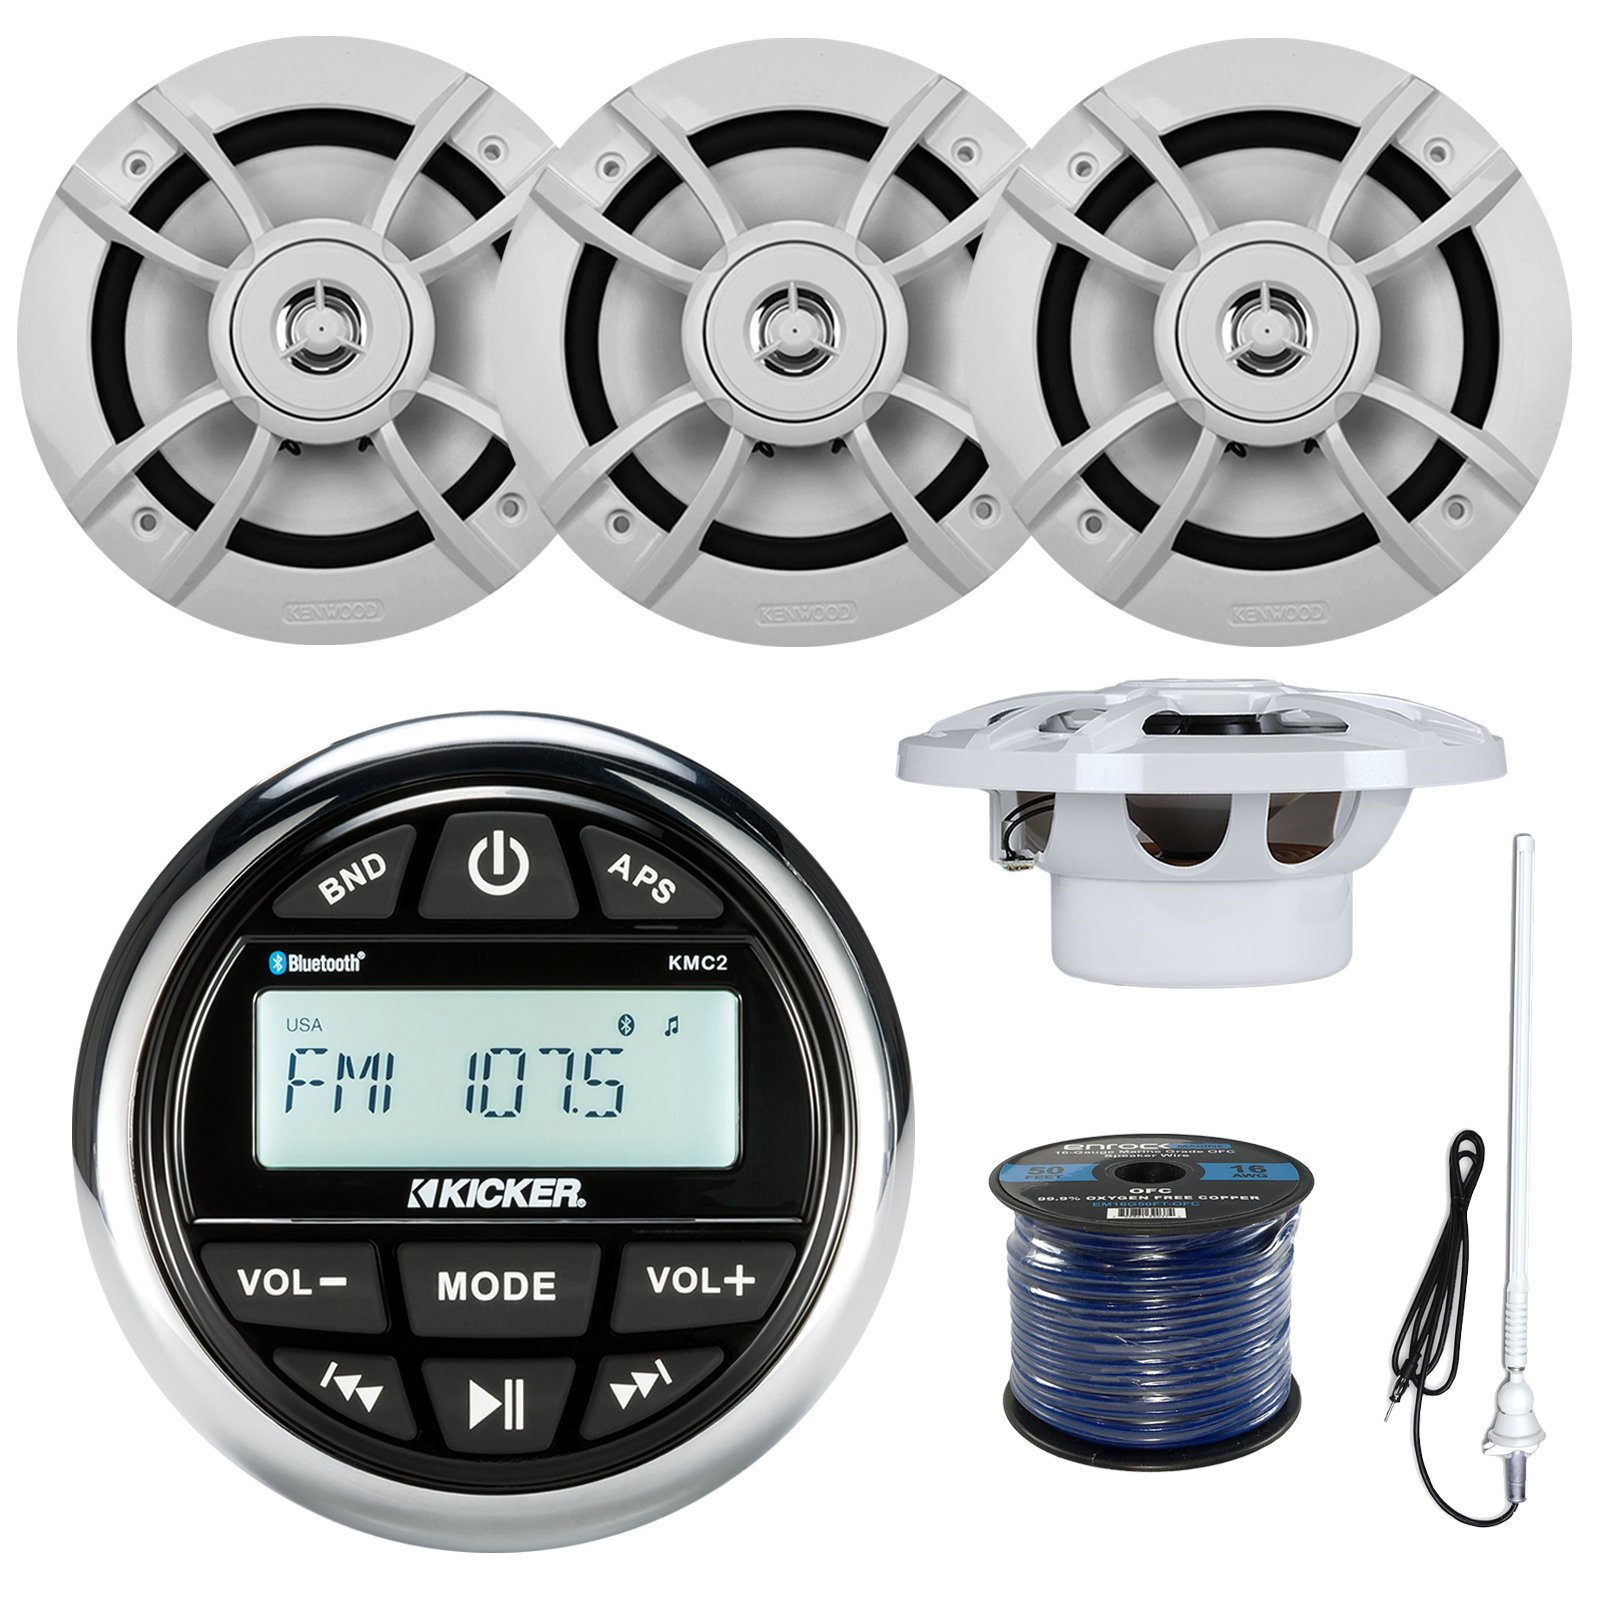 Kicker KMC2 Marine Boat Yacht Gauge Style AM/FM Radio Stereo Receiver Bundle Combo With 4x Kenwood 6.5-Inch 100 Watt Speaker + Enrock Radio Antenna + 50 Feet Speaker Wire by EnrockMarineBundle